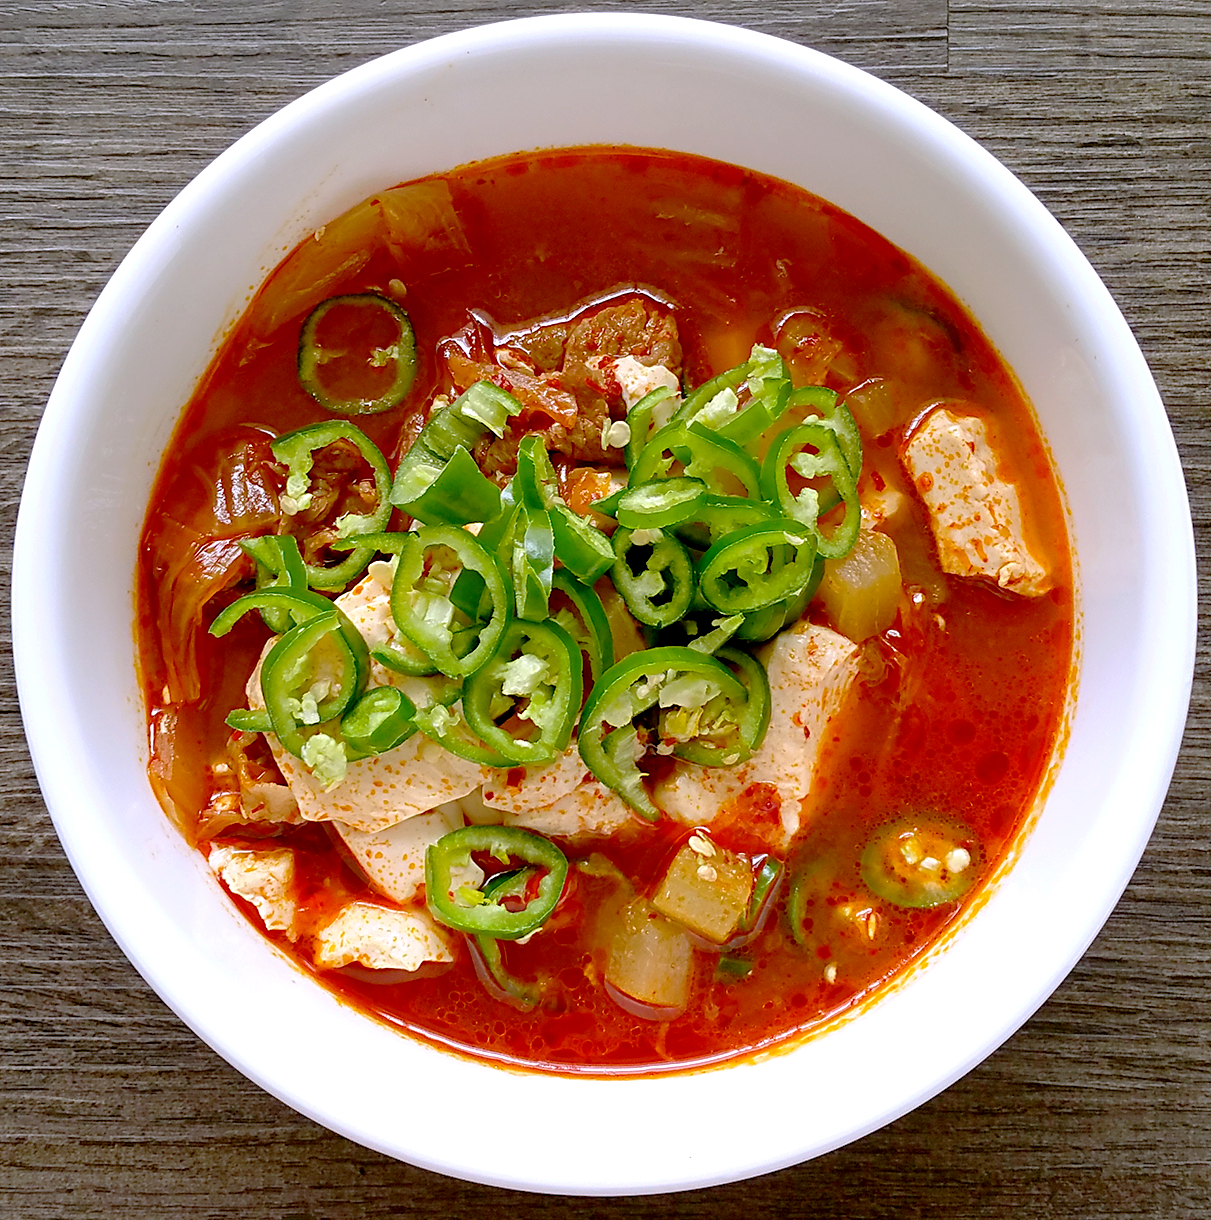 Kimchi noodle soup, pork kimchi, kimchi with beef etc. I can just